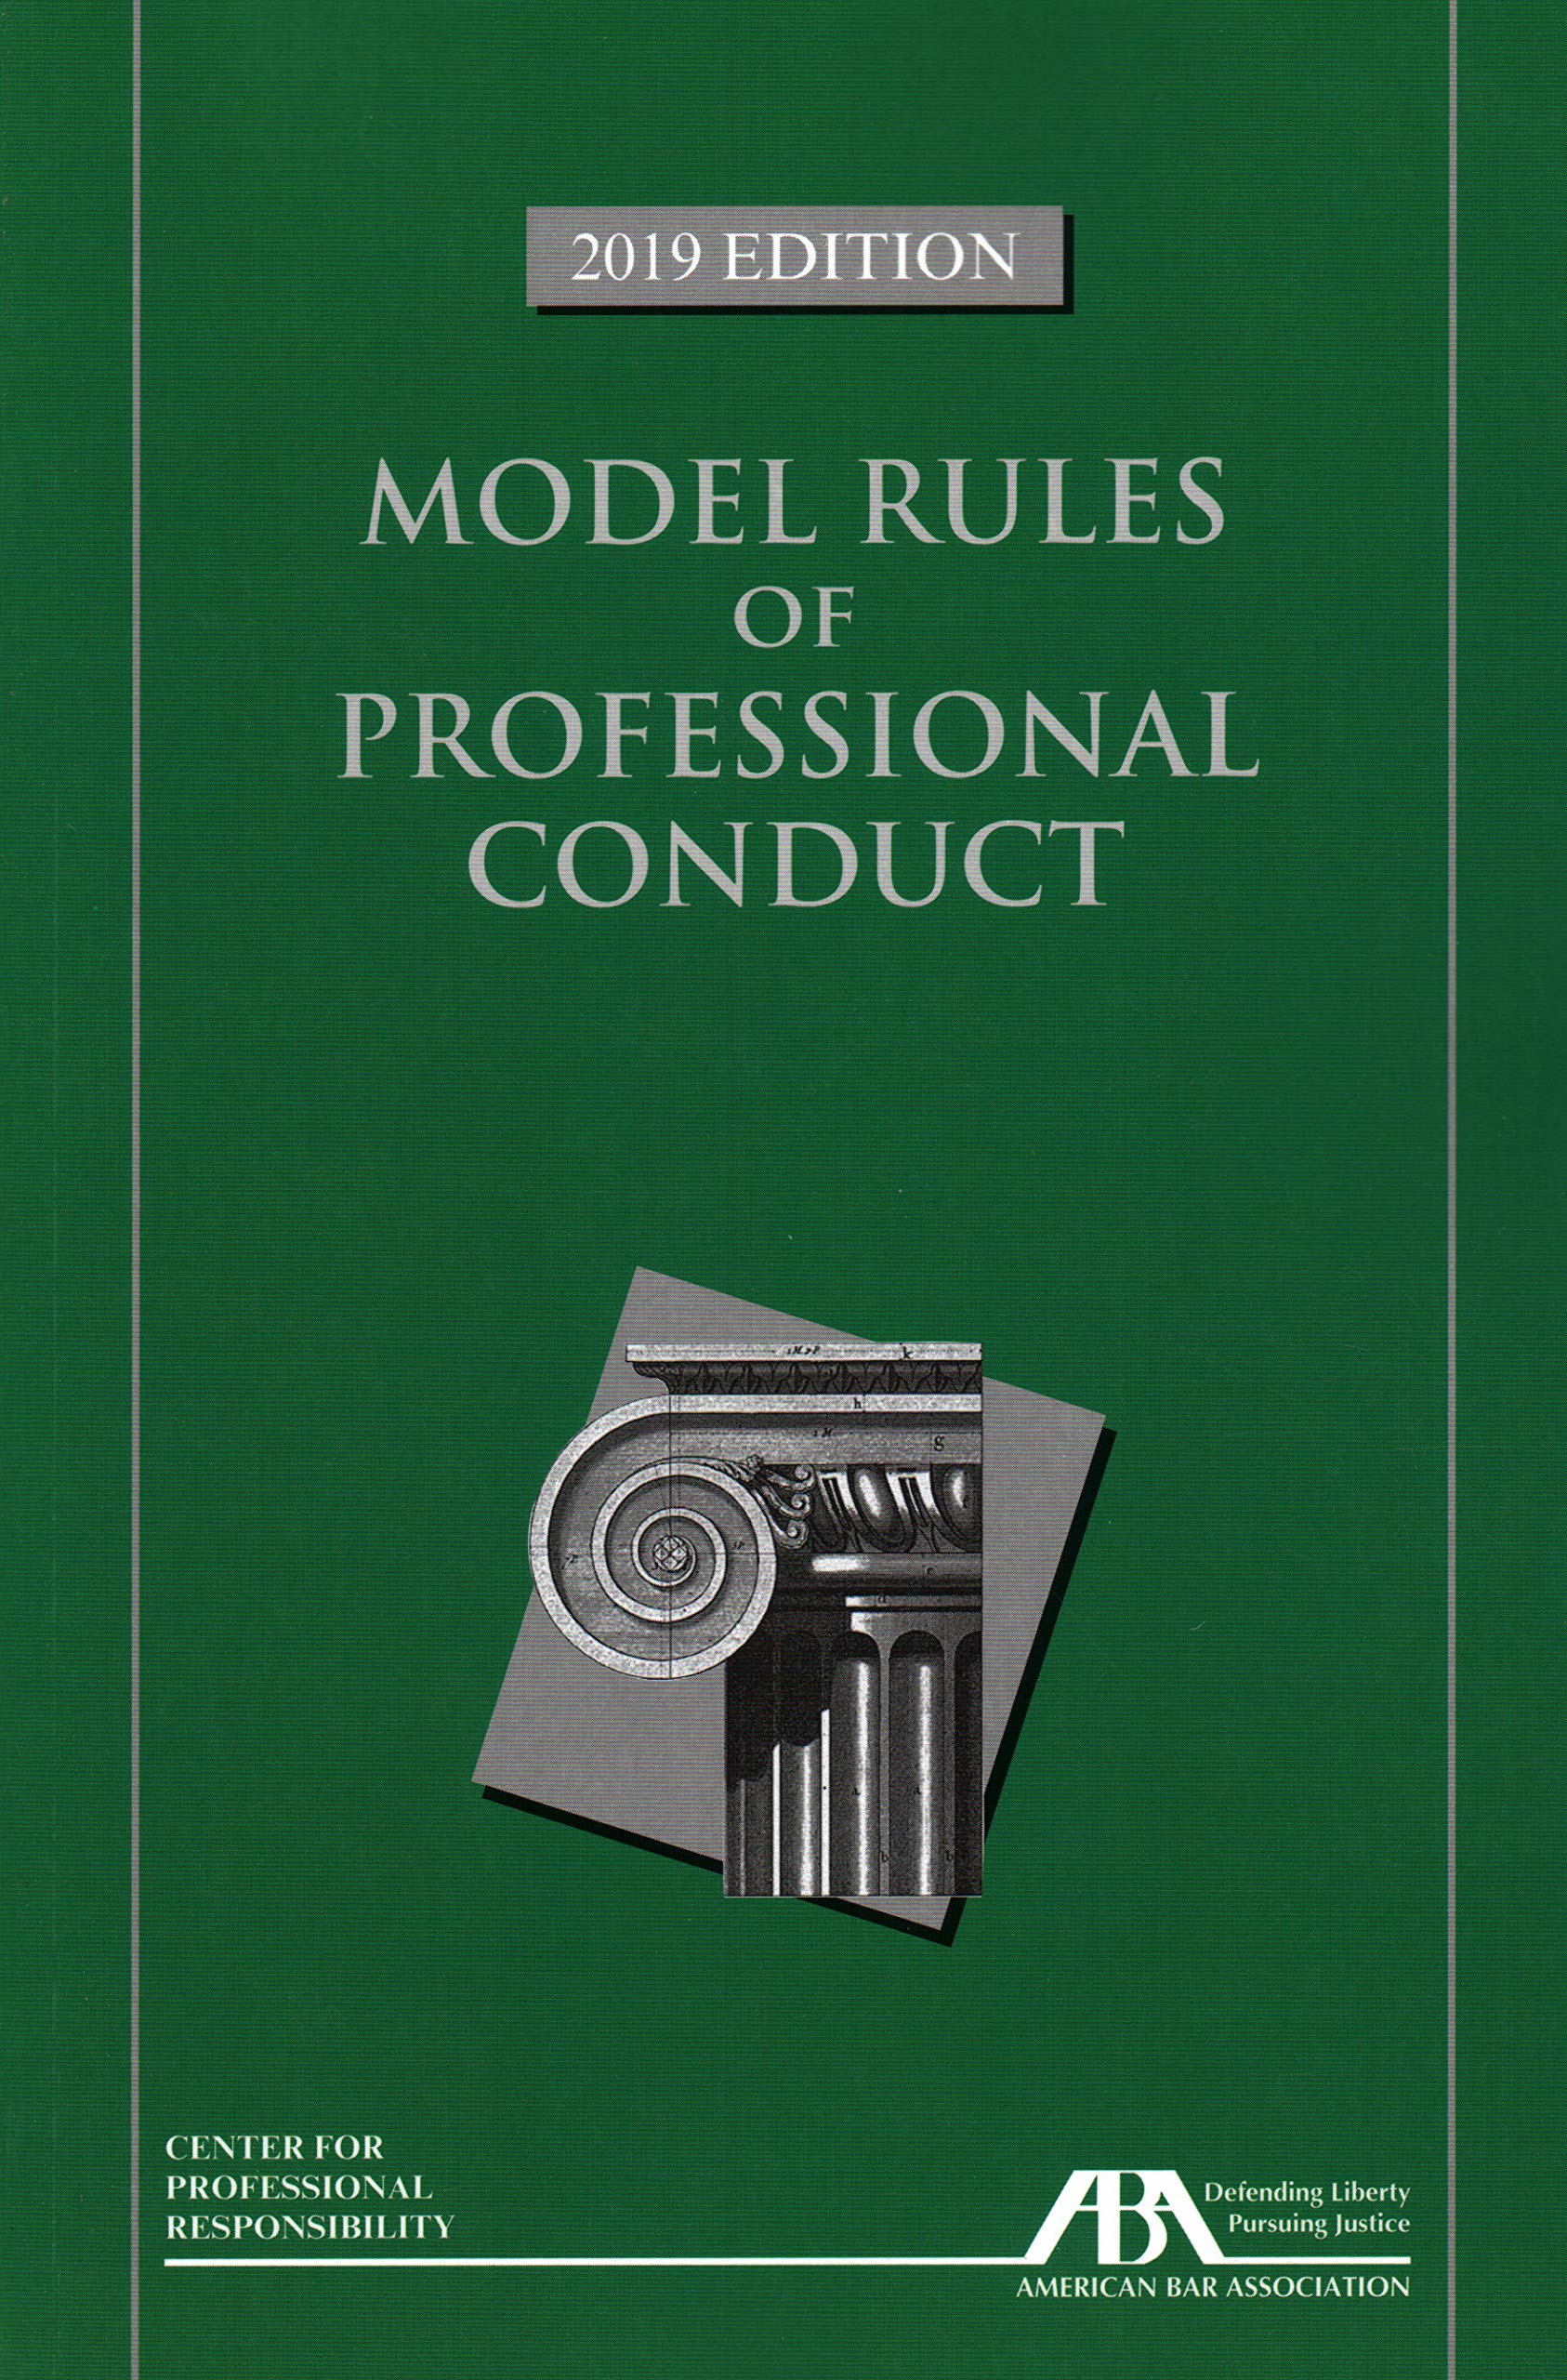 Model Professional Conduct Center Responsibility